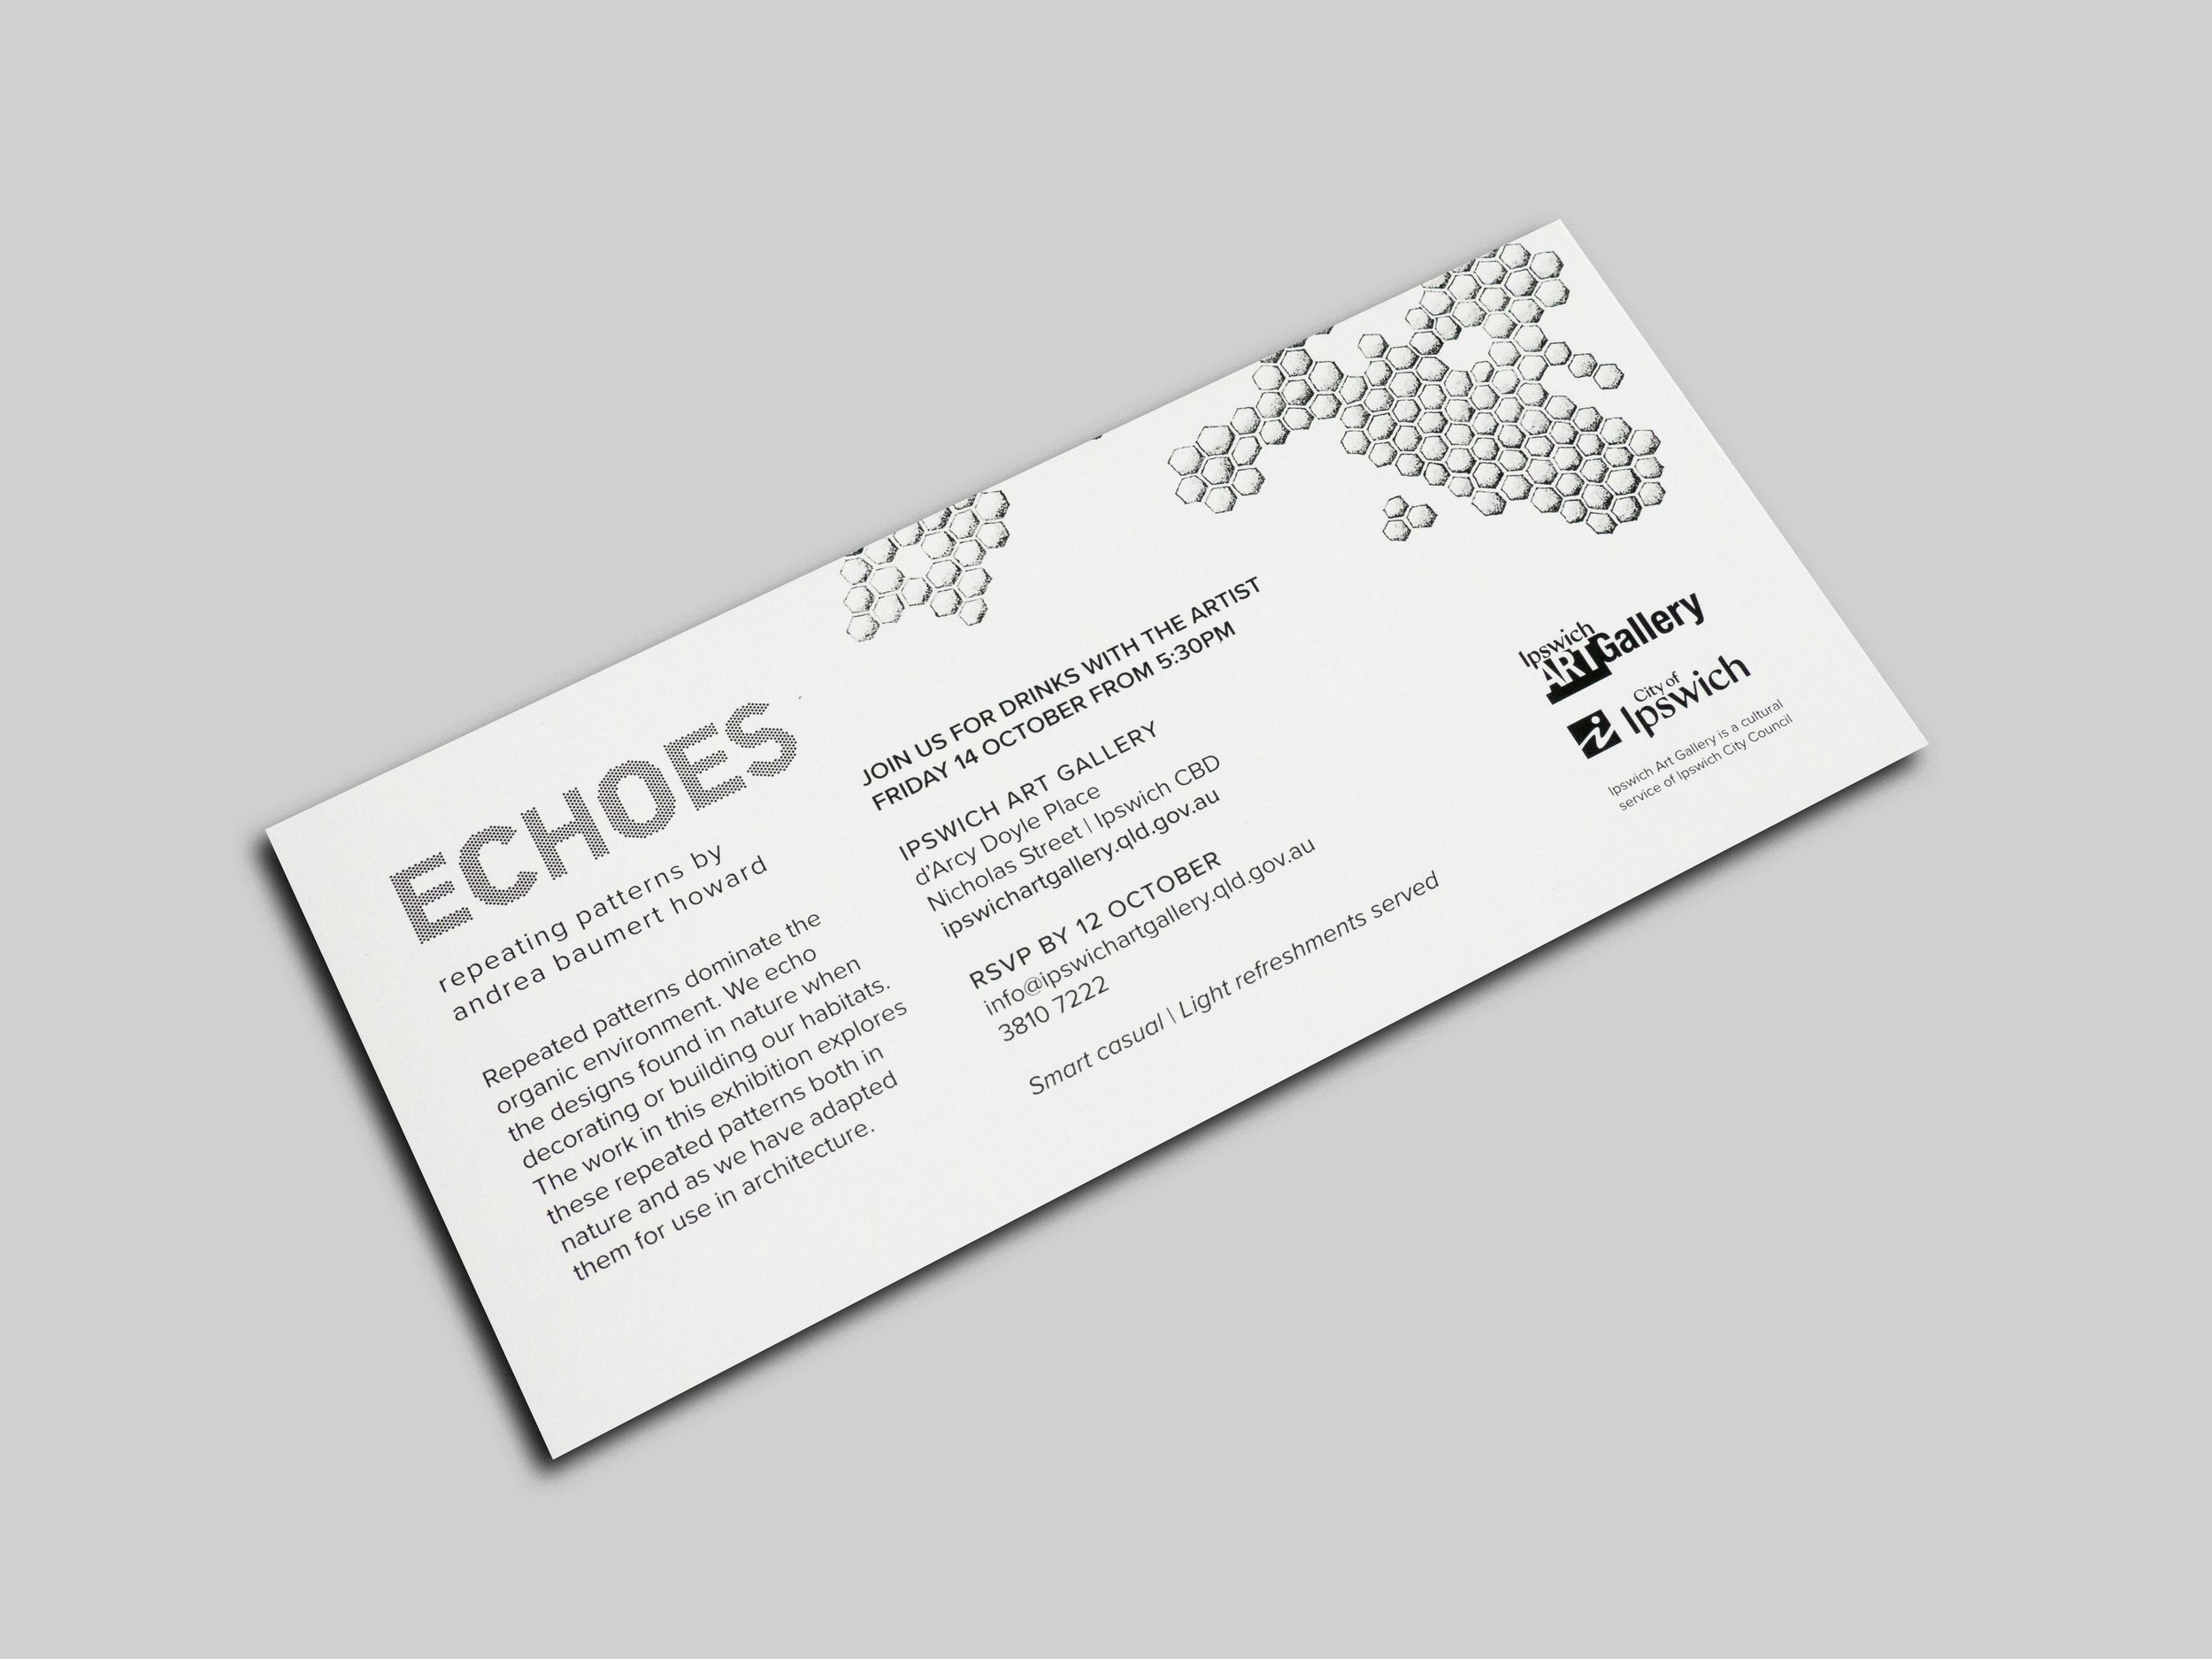 ECHOES for website2.jpg